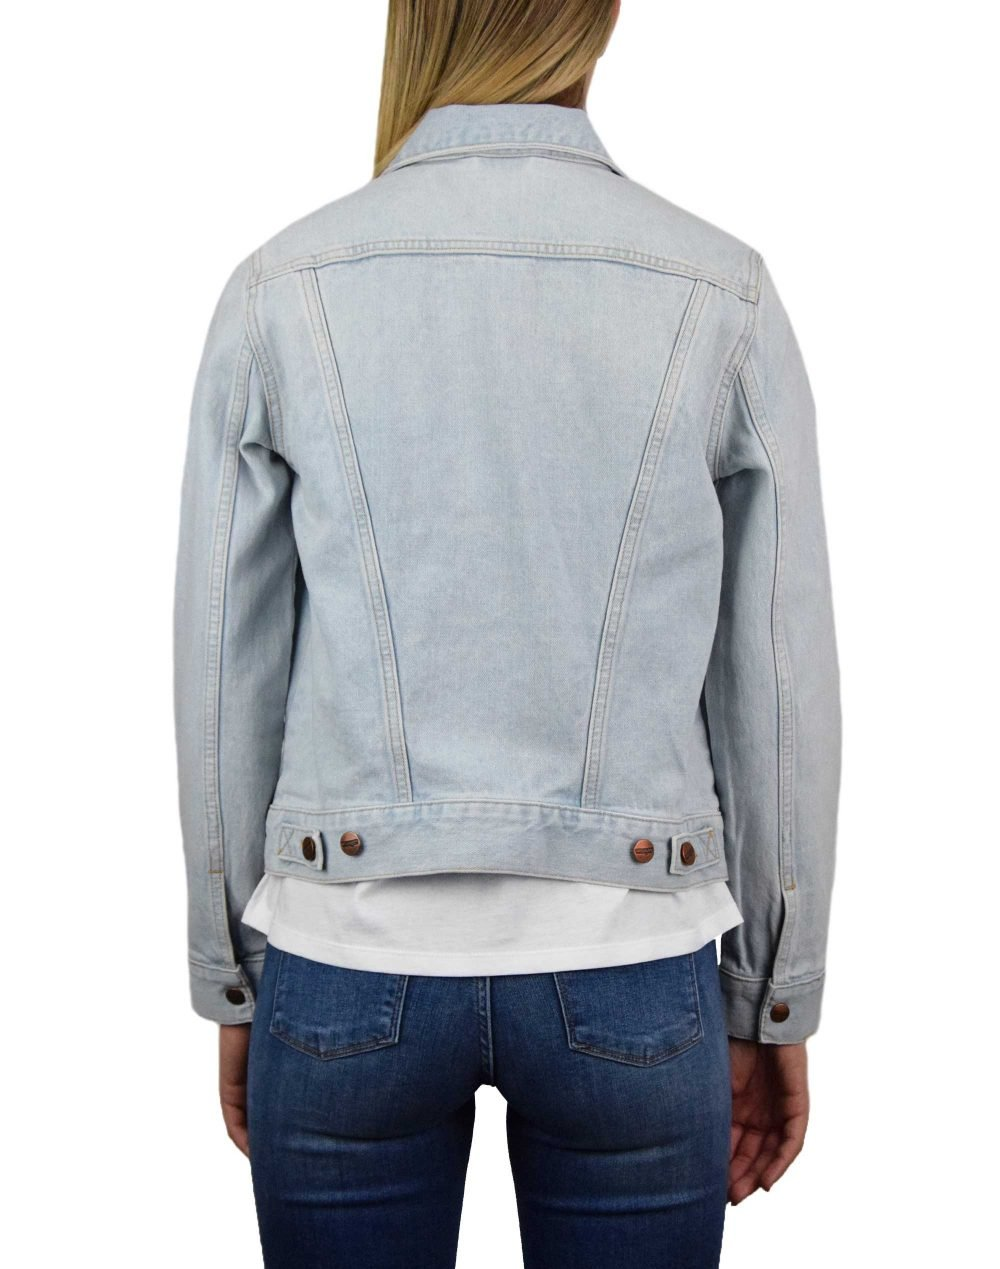 Wrangler Blue Rhapsody Jacket (W4WJUG13I) Bleach Denim